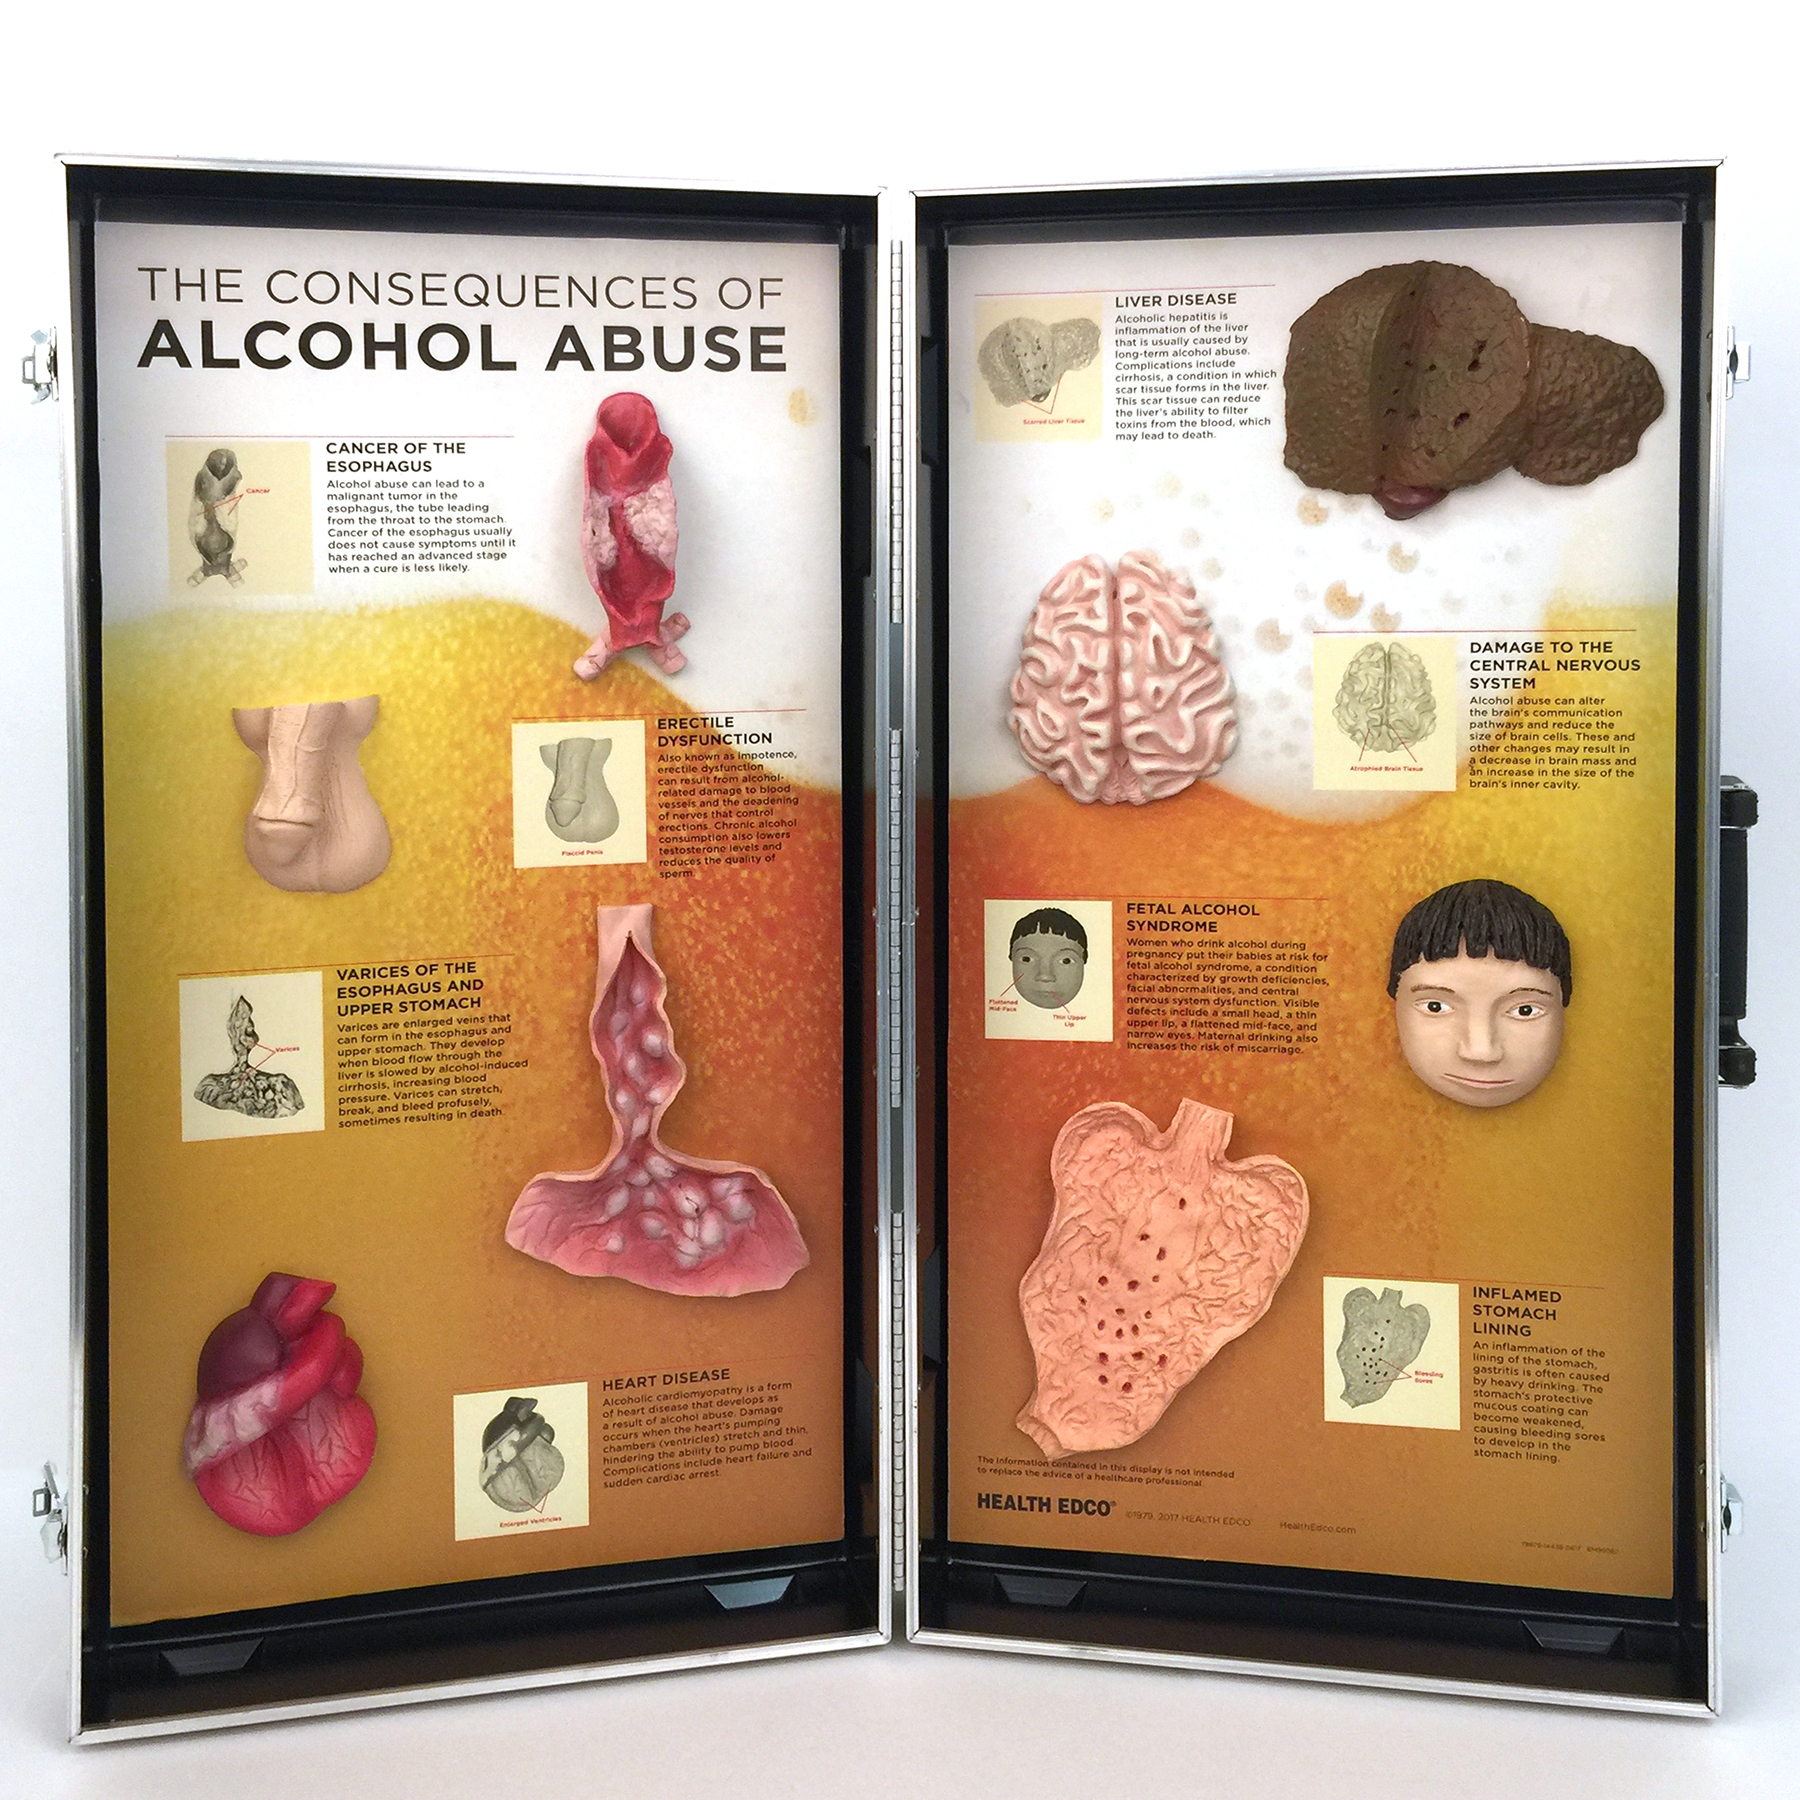 Alcohol Abuse Consequences Display with 3-D organ models